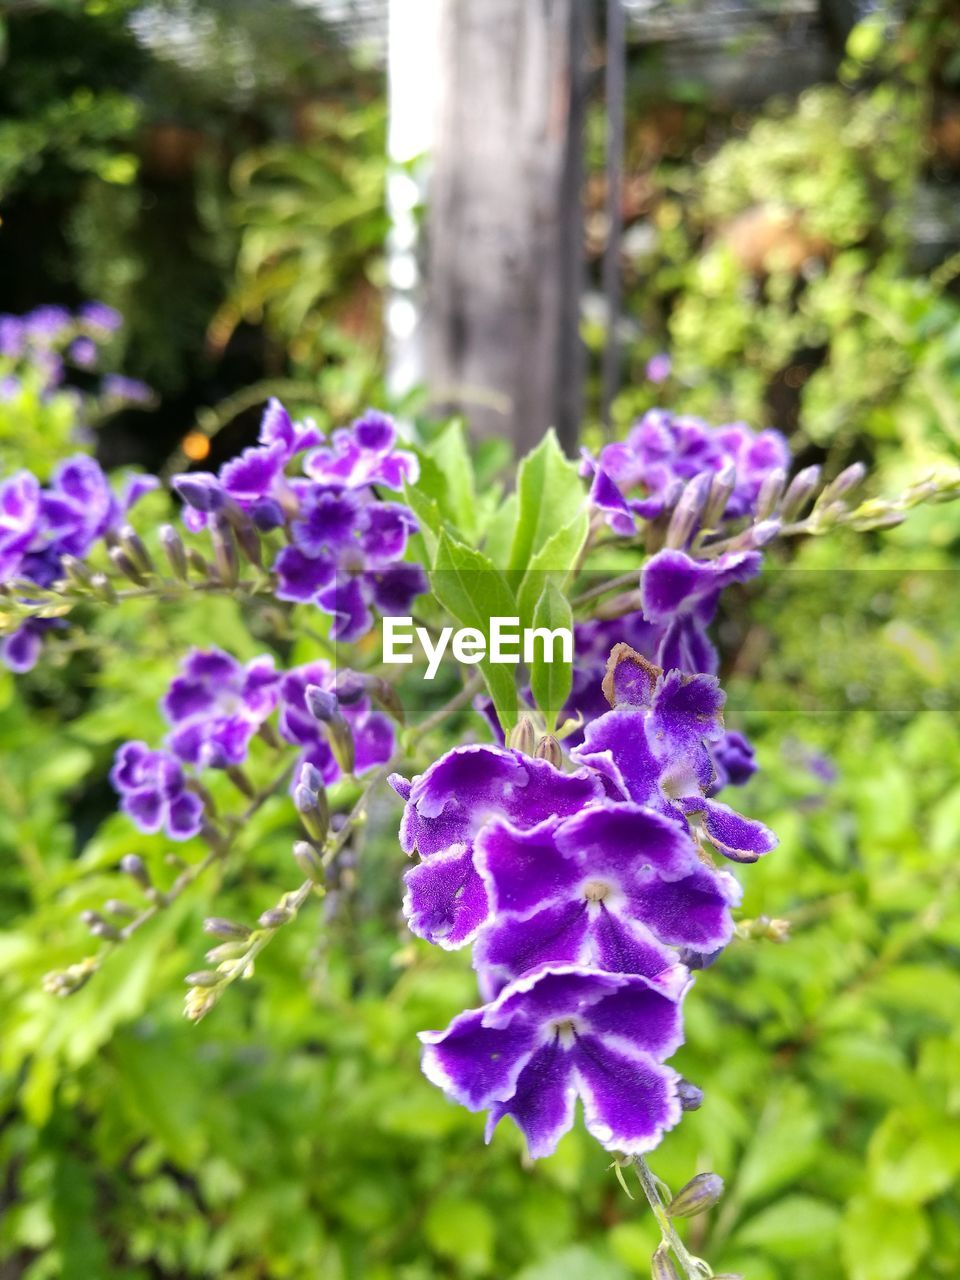 plant, flower, flowering plant, purple, growth, beauty in nature, vulnerability, freshness, close-up, fragility, nature, no people, focus on foreground, day, outdoors, plant part, leaf, petal, green color, inflorescence, flower head, lilac